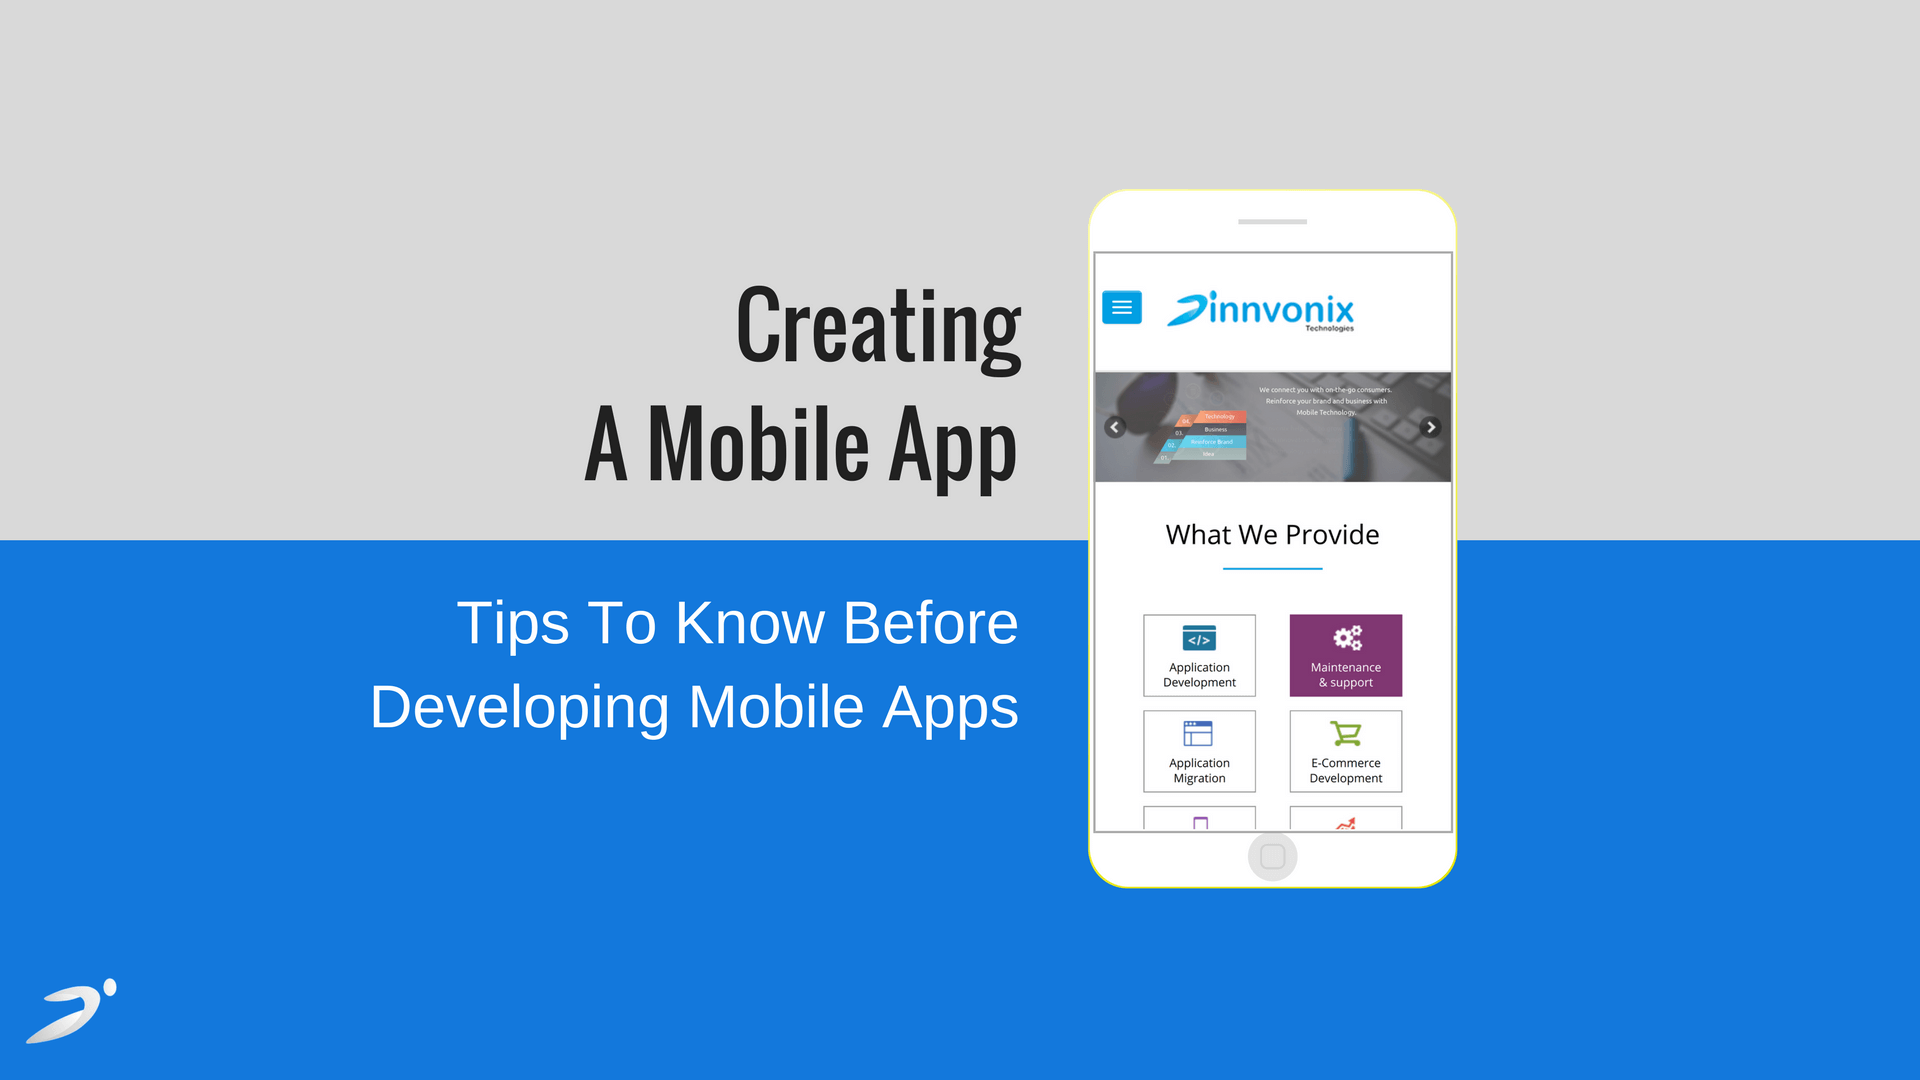 Tips to knew before developing mobile apps